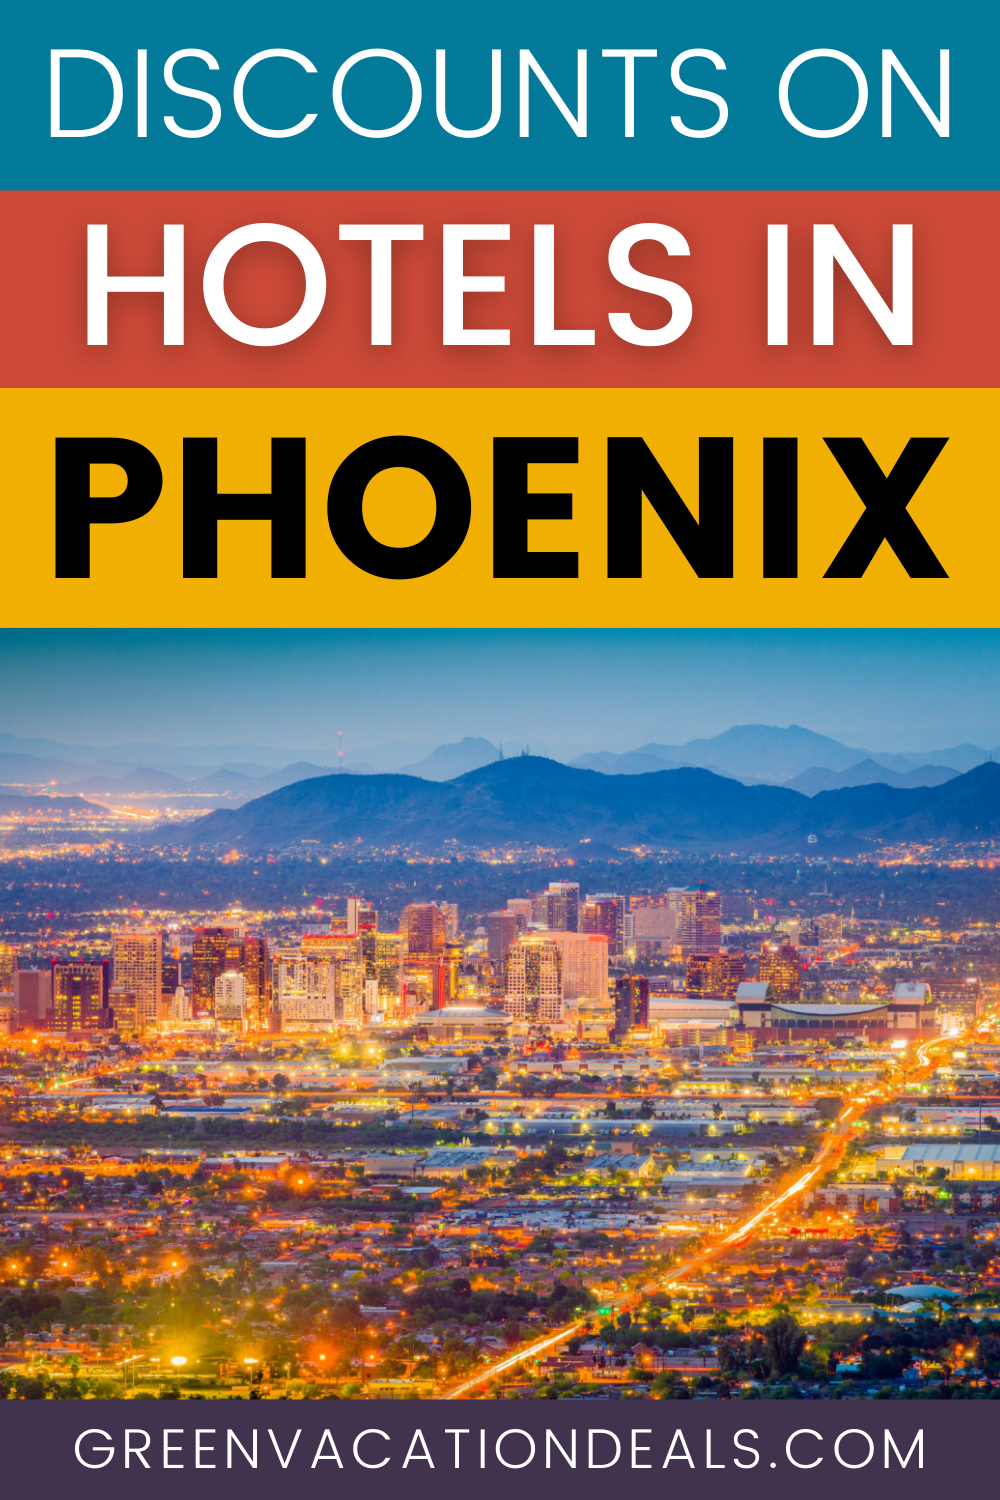 Budget travel deals: discounted nightly rates on Phoenix, Arizona hotels in Scottsdale, Glendale, Airport, Mesa, Chandler, Downtown, Stadium, Mesa, I-17... Great travel hacks for your next Phoenix trip. #Phoenix #PhoenixAZ #Arizona #HotelDeals #TravelDelas #HotelSale #TravelHacks #Arizonatravel #budgettravel #budgettraveler #cheaptravel #cheapvacation #budgetvacation #USAtravel #UStravel